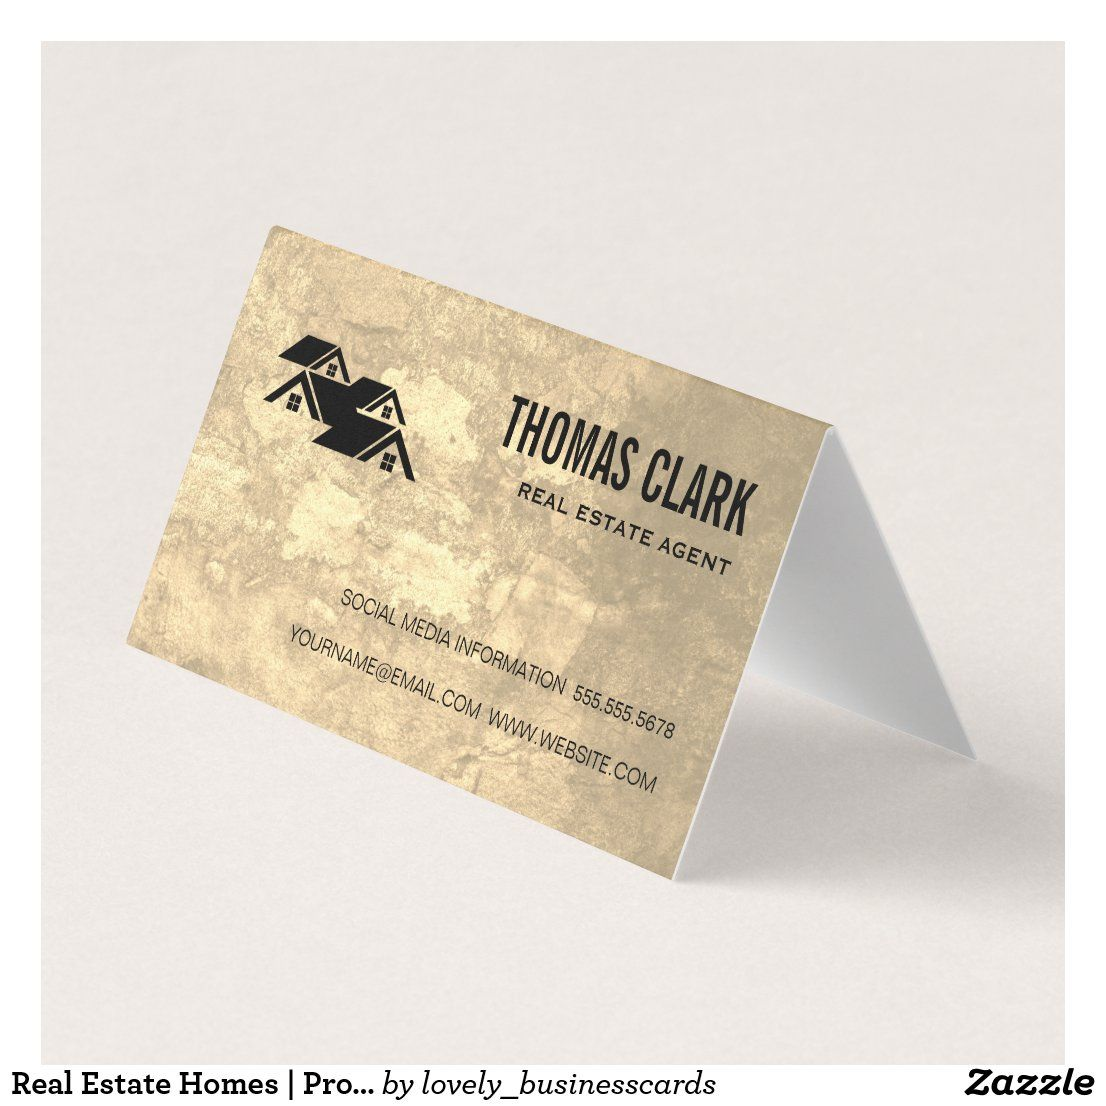 Real Estate Homes Professional Lux Business Card Zazzle Com In 2021 Luxe Business Cards Real Estate Business Cards Real Estate